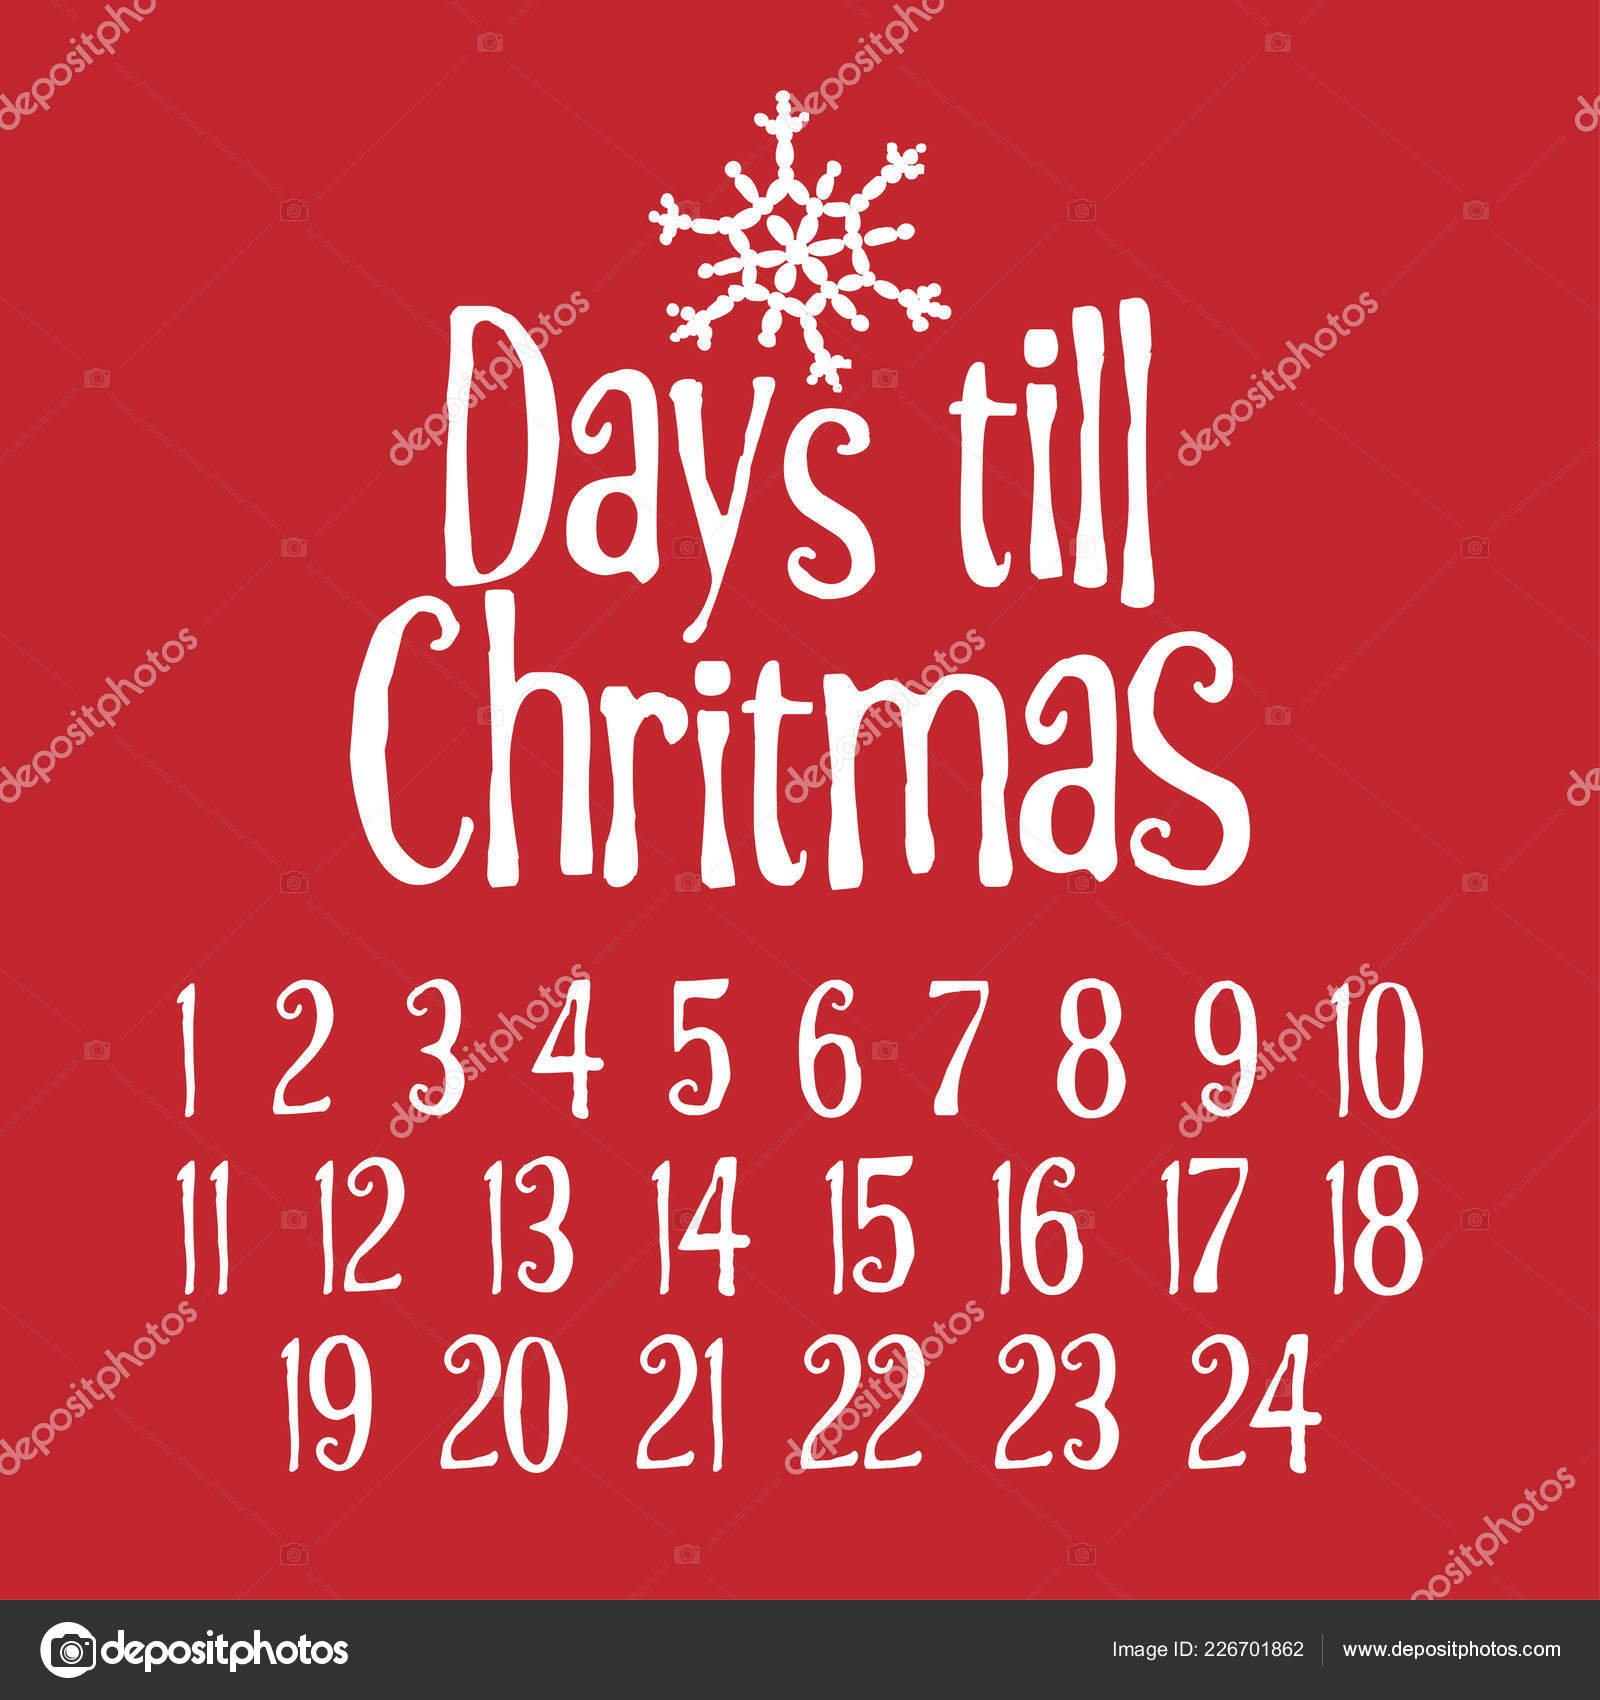 How Long Until Christmas.How Days Till Christmas